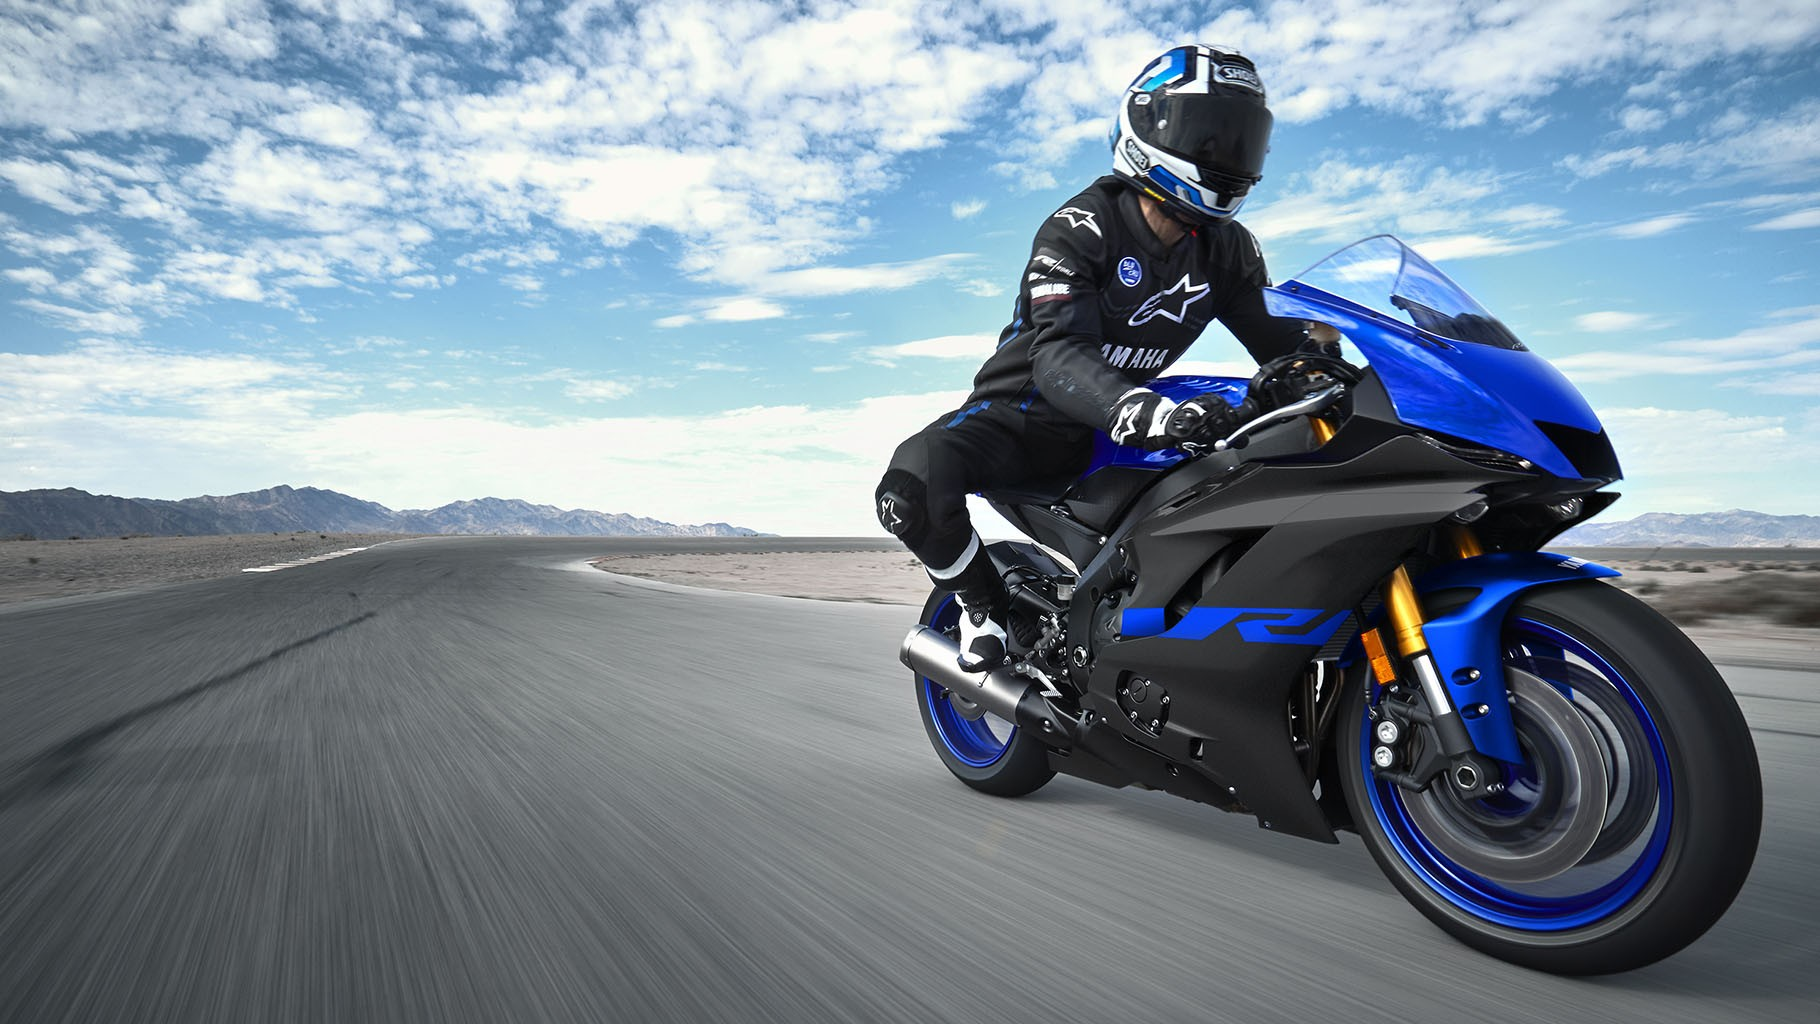 yzf-r6-team-yamaha-blue-action-02_wc7j